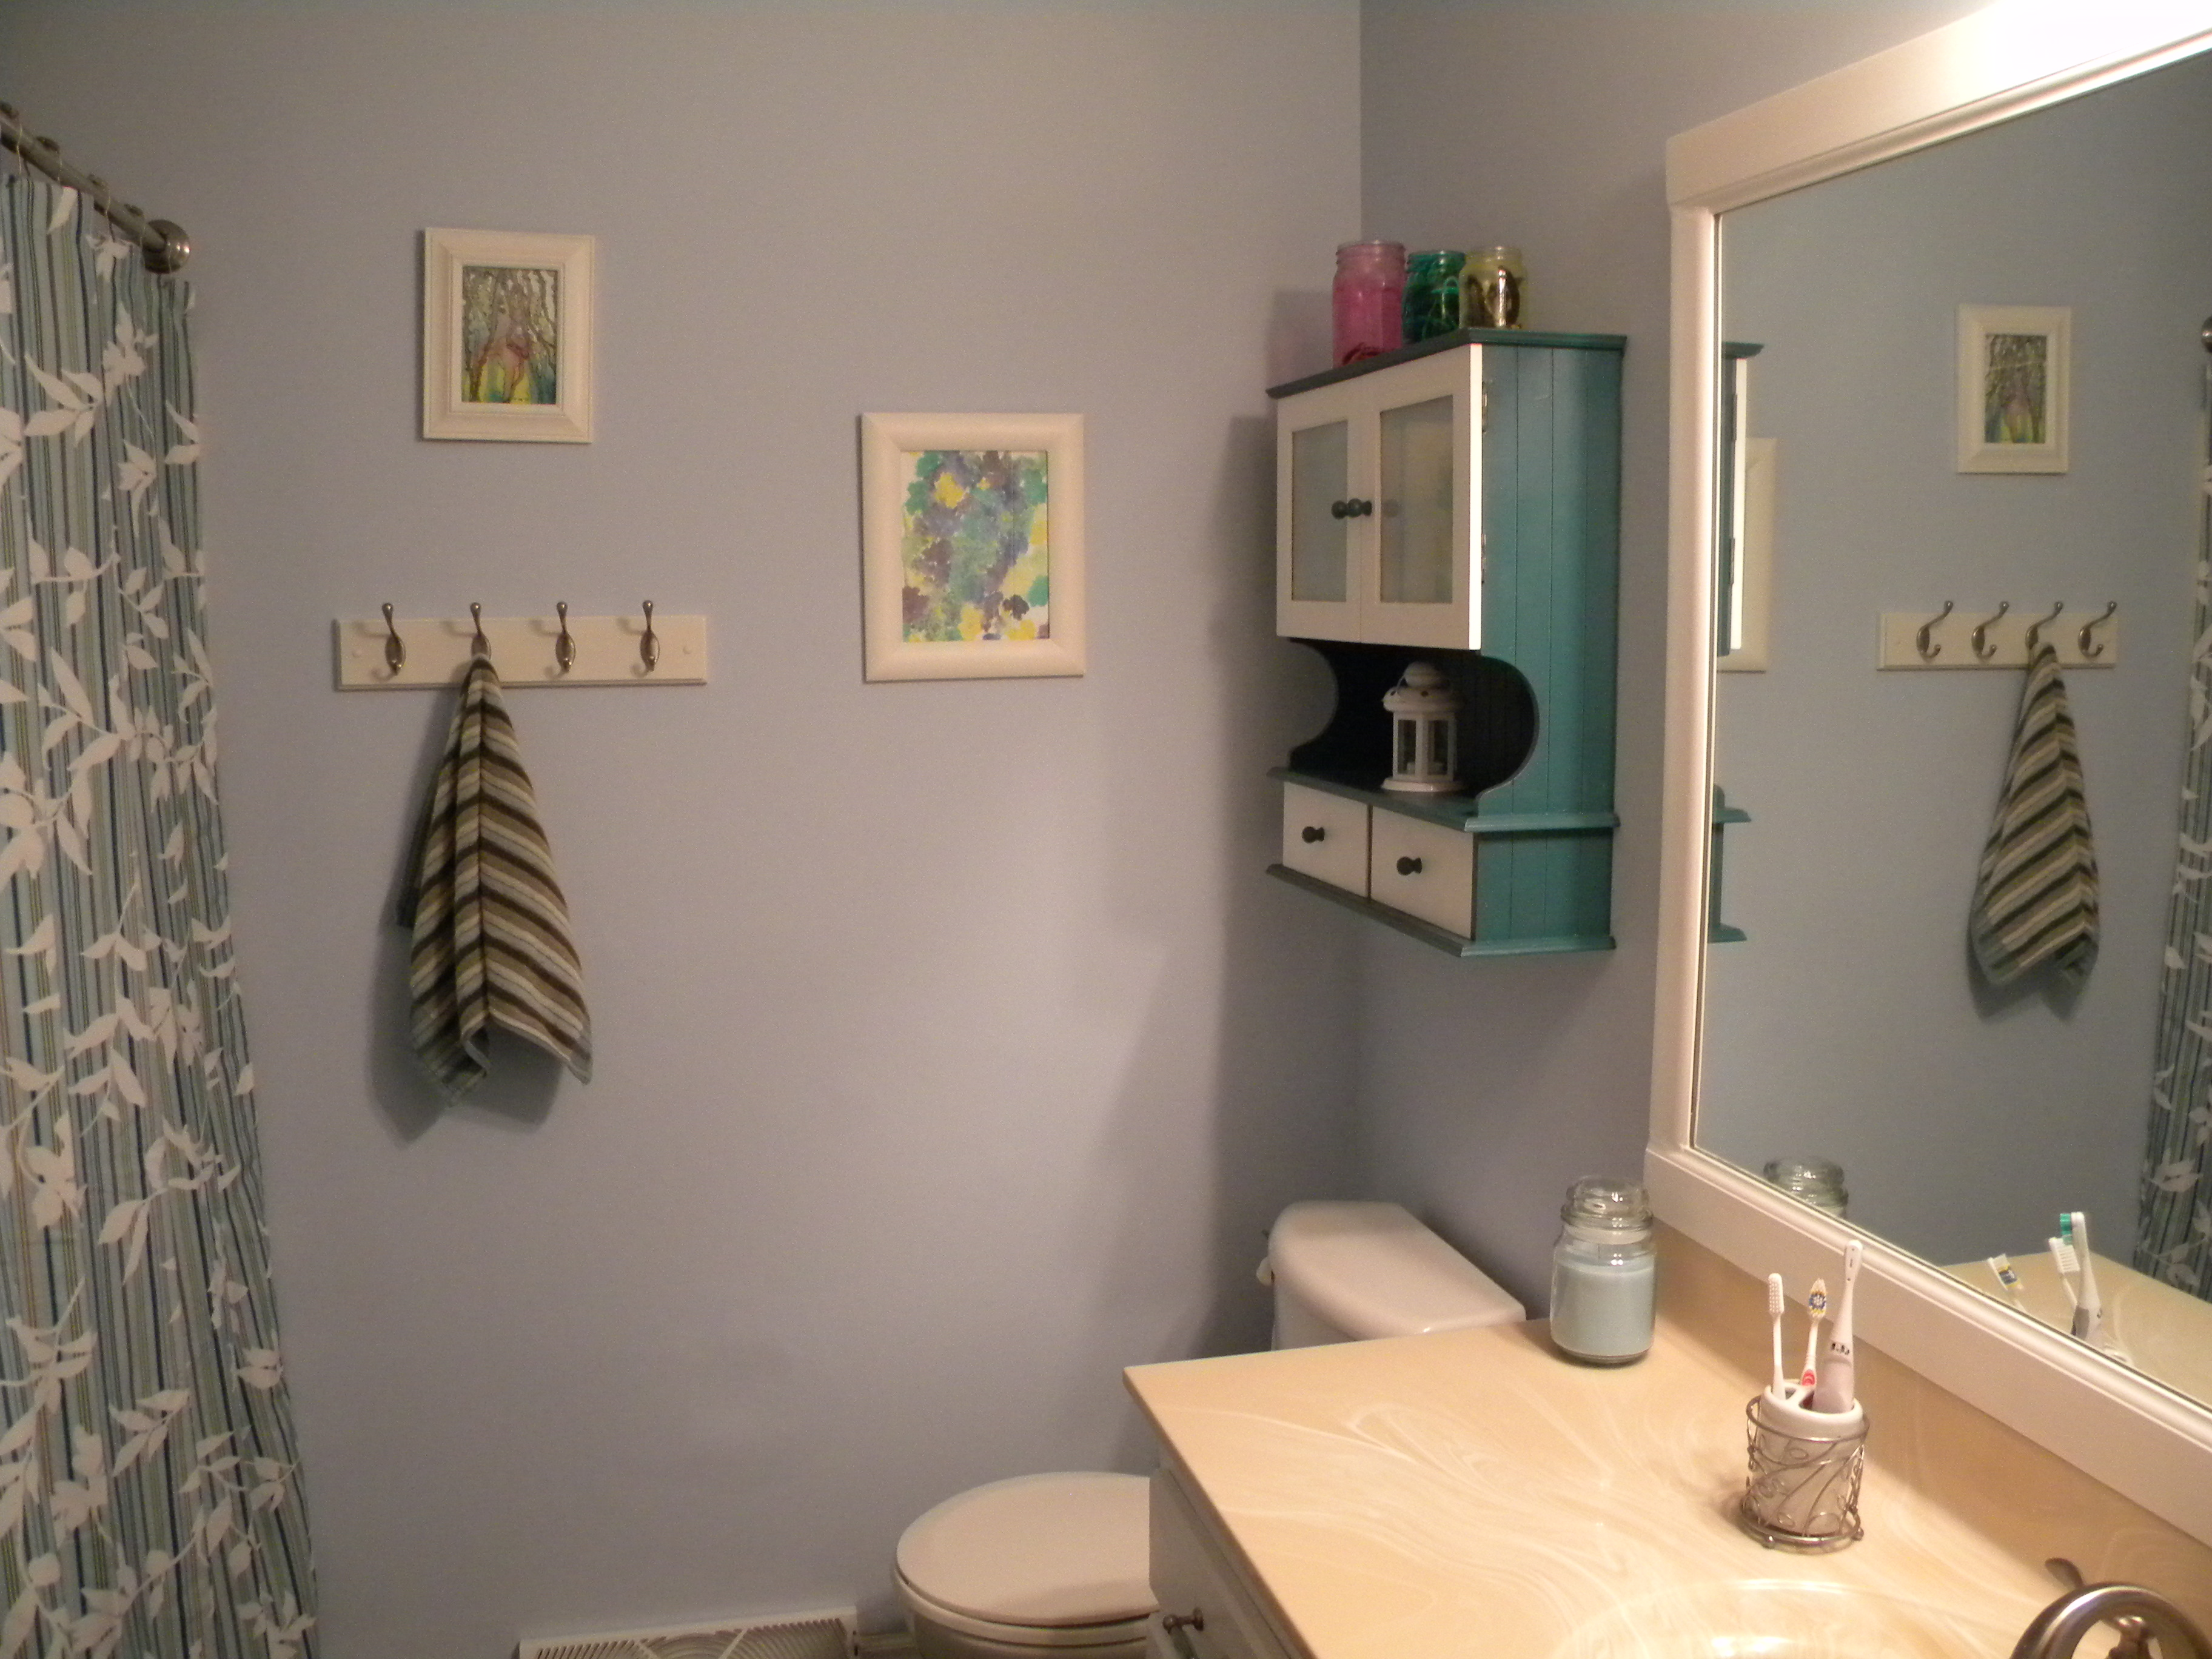 Adhesive Shower Curtain Rod Holders Bathroom Reno On A Budget Educare Homeschool